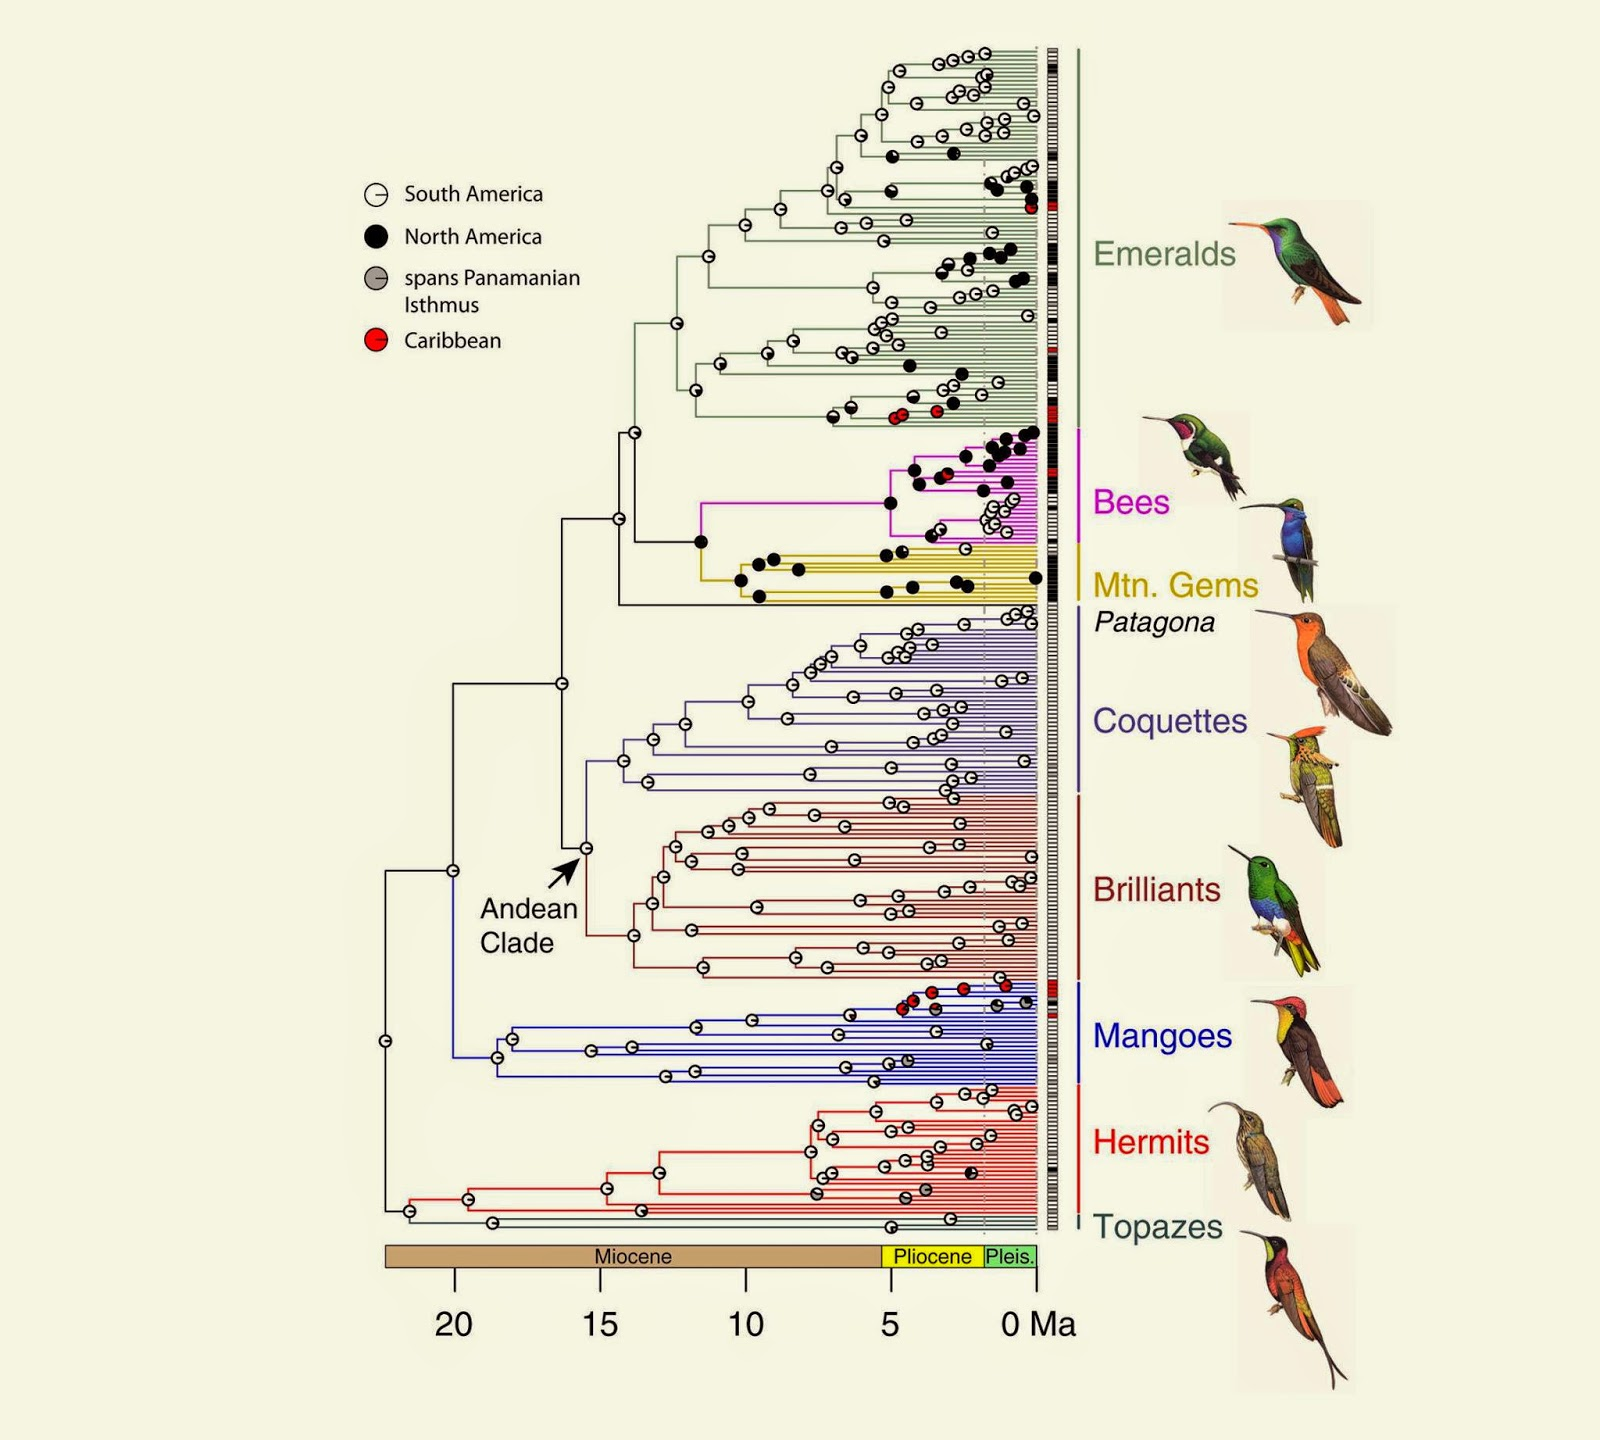 Species New to Science: [Ornithology • 2014] Molecular